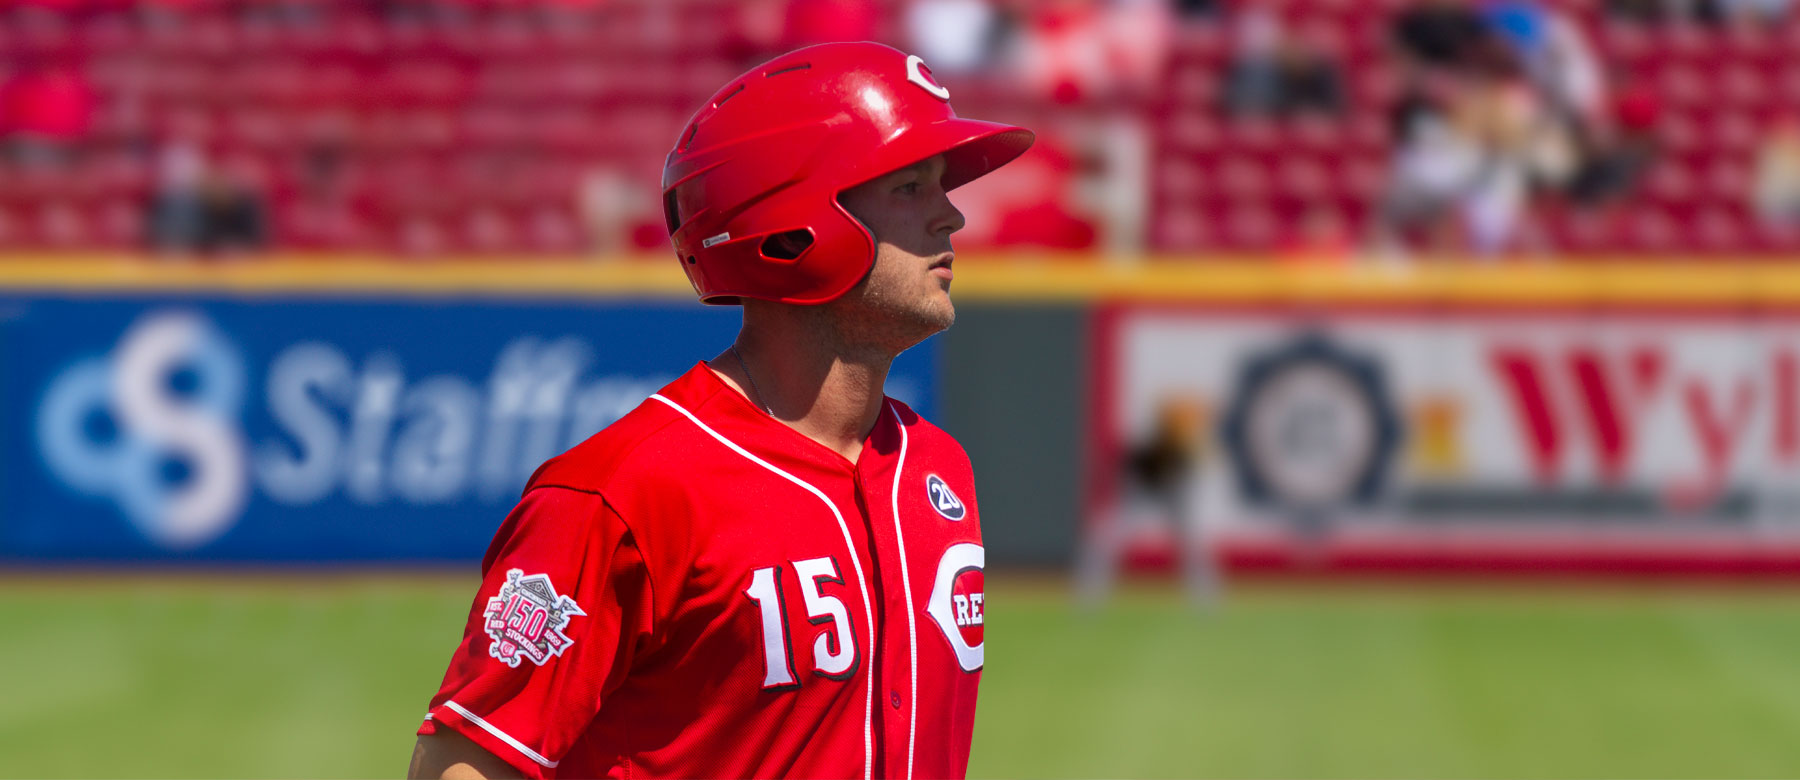 Reds outfielder Nick Senzel needs stitches after taking a ball to the face